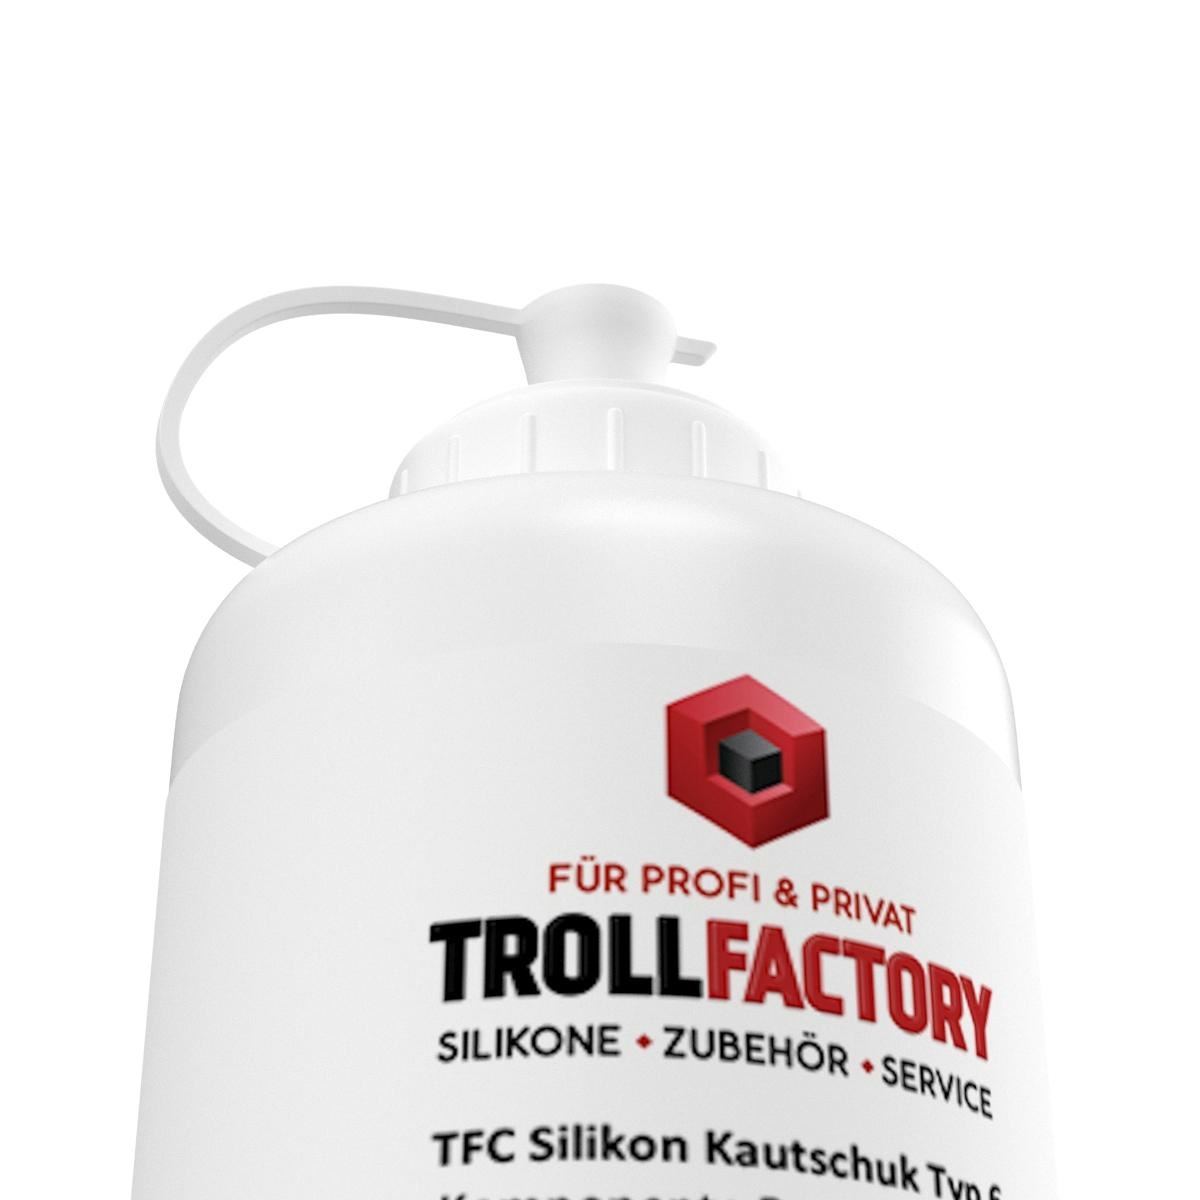 Troll Factory TFC Troll Factory Silicone Rubber Type 6 Voedsel 500g